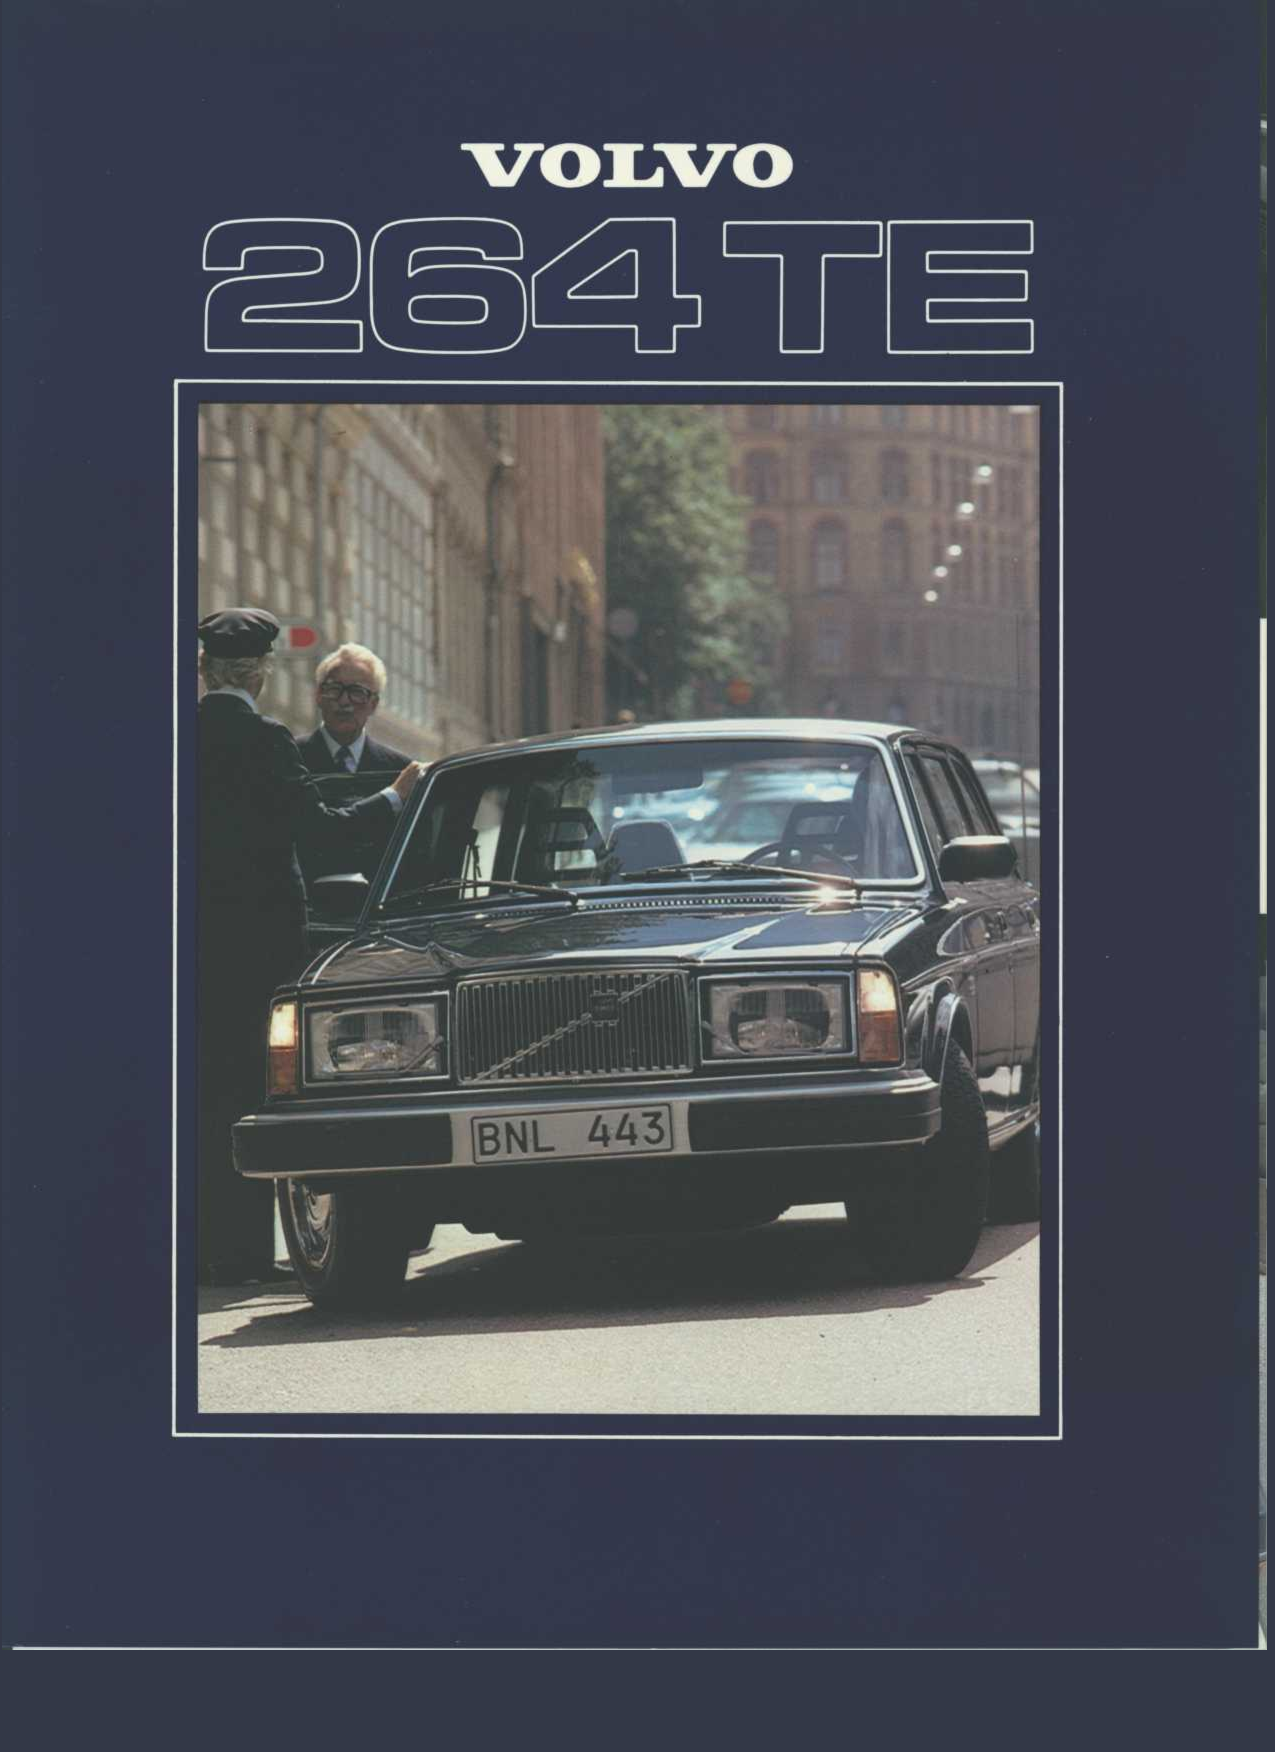 Volvo 264te photo - 4